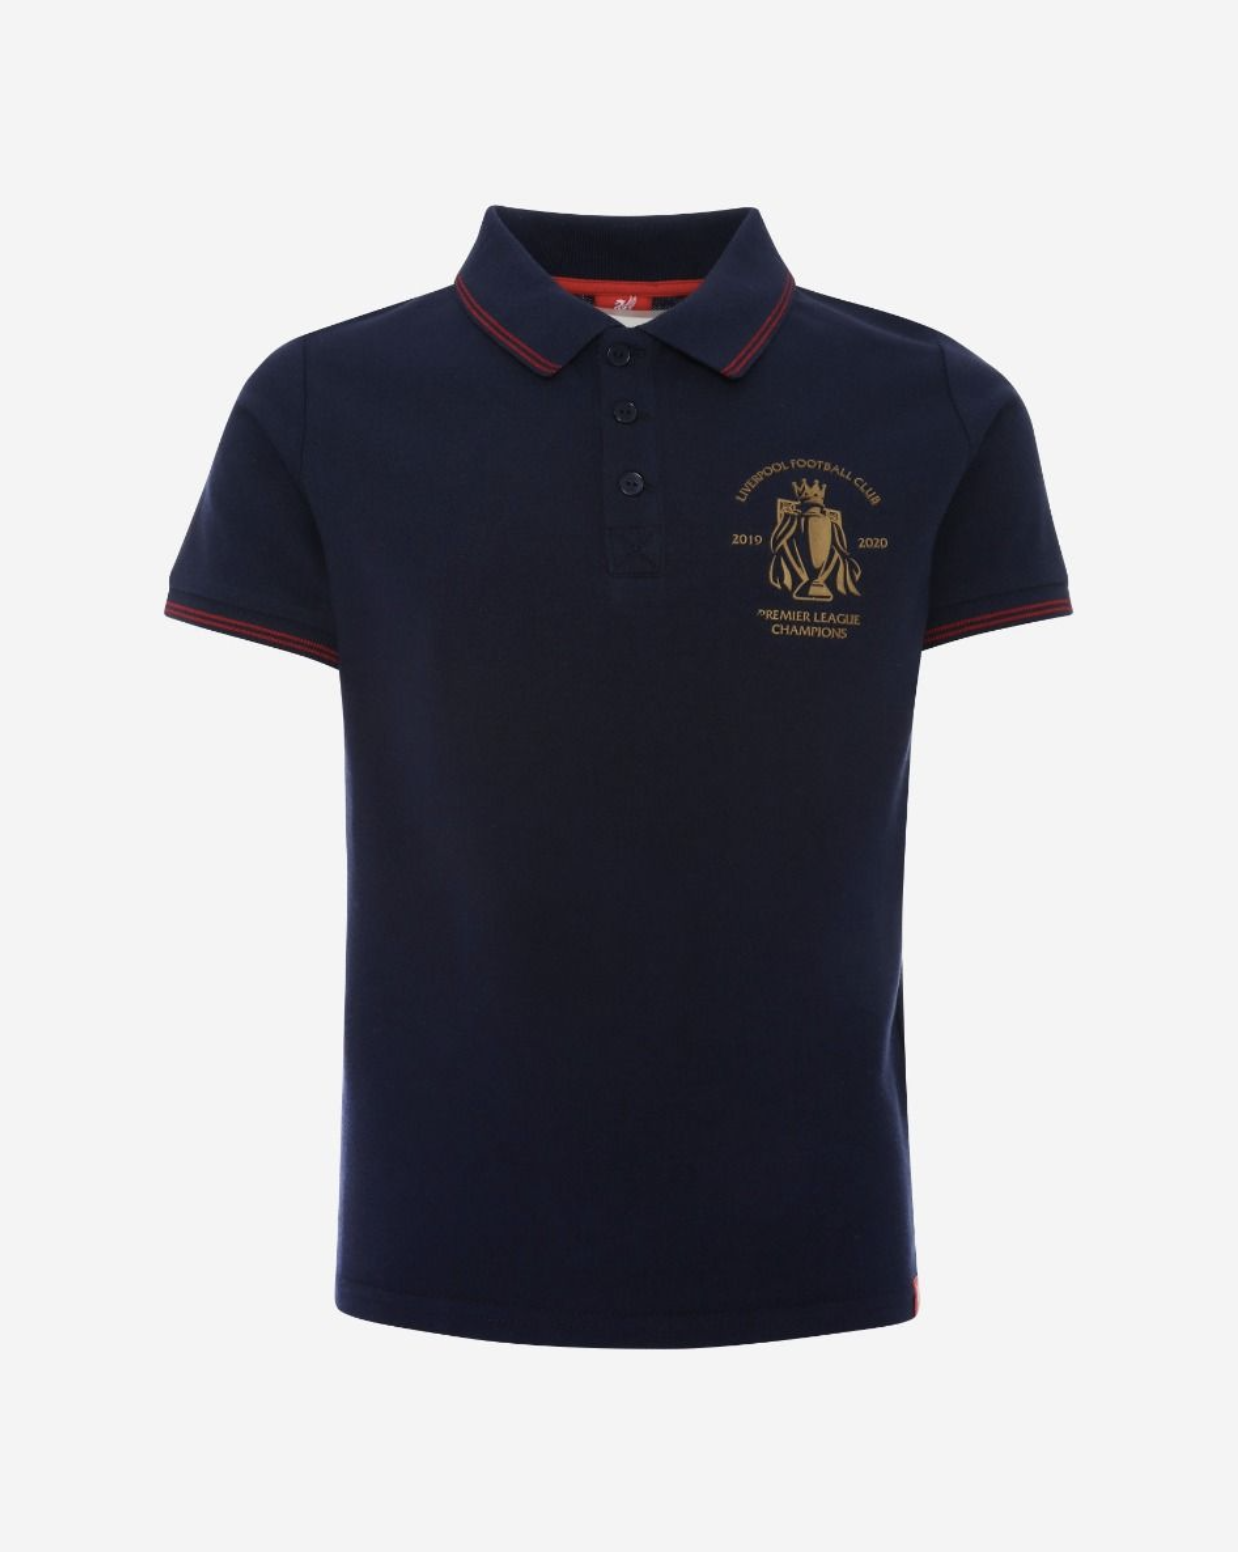 Liverpool FC Youth Premier League Champions 19/20 Navy Polo